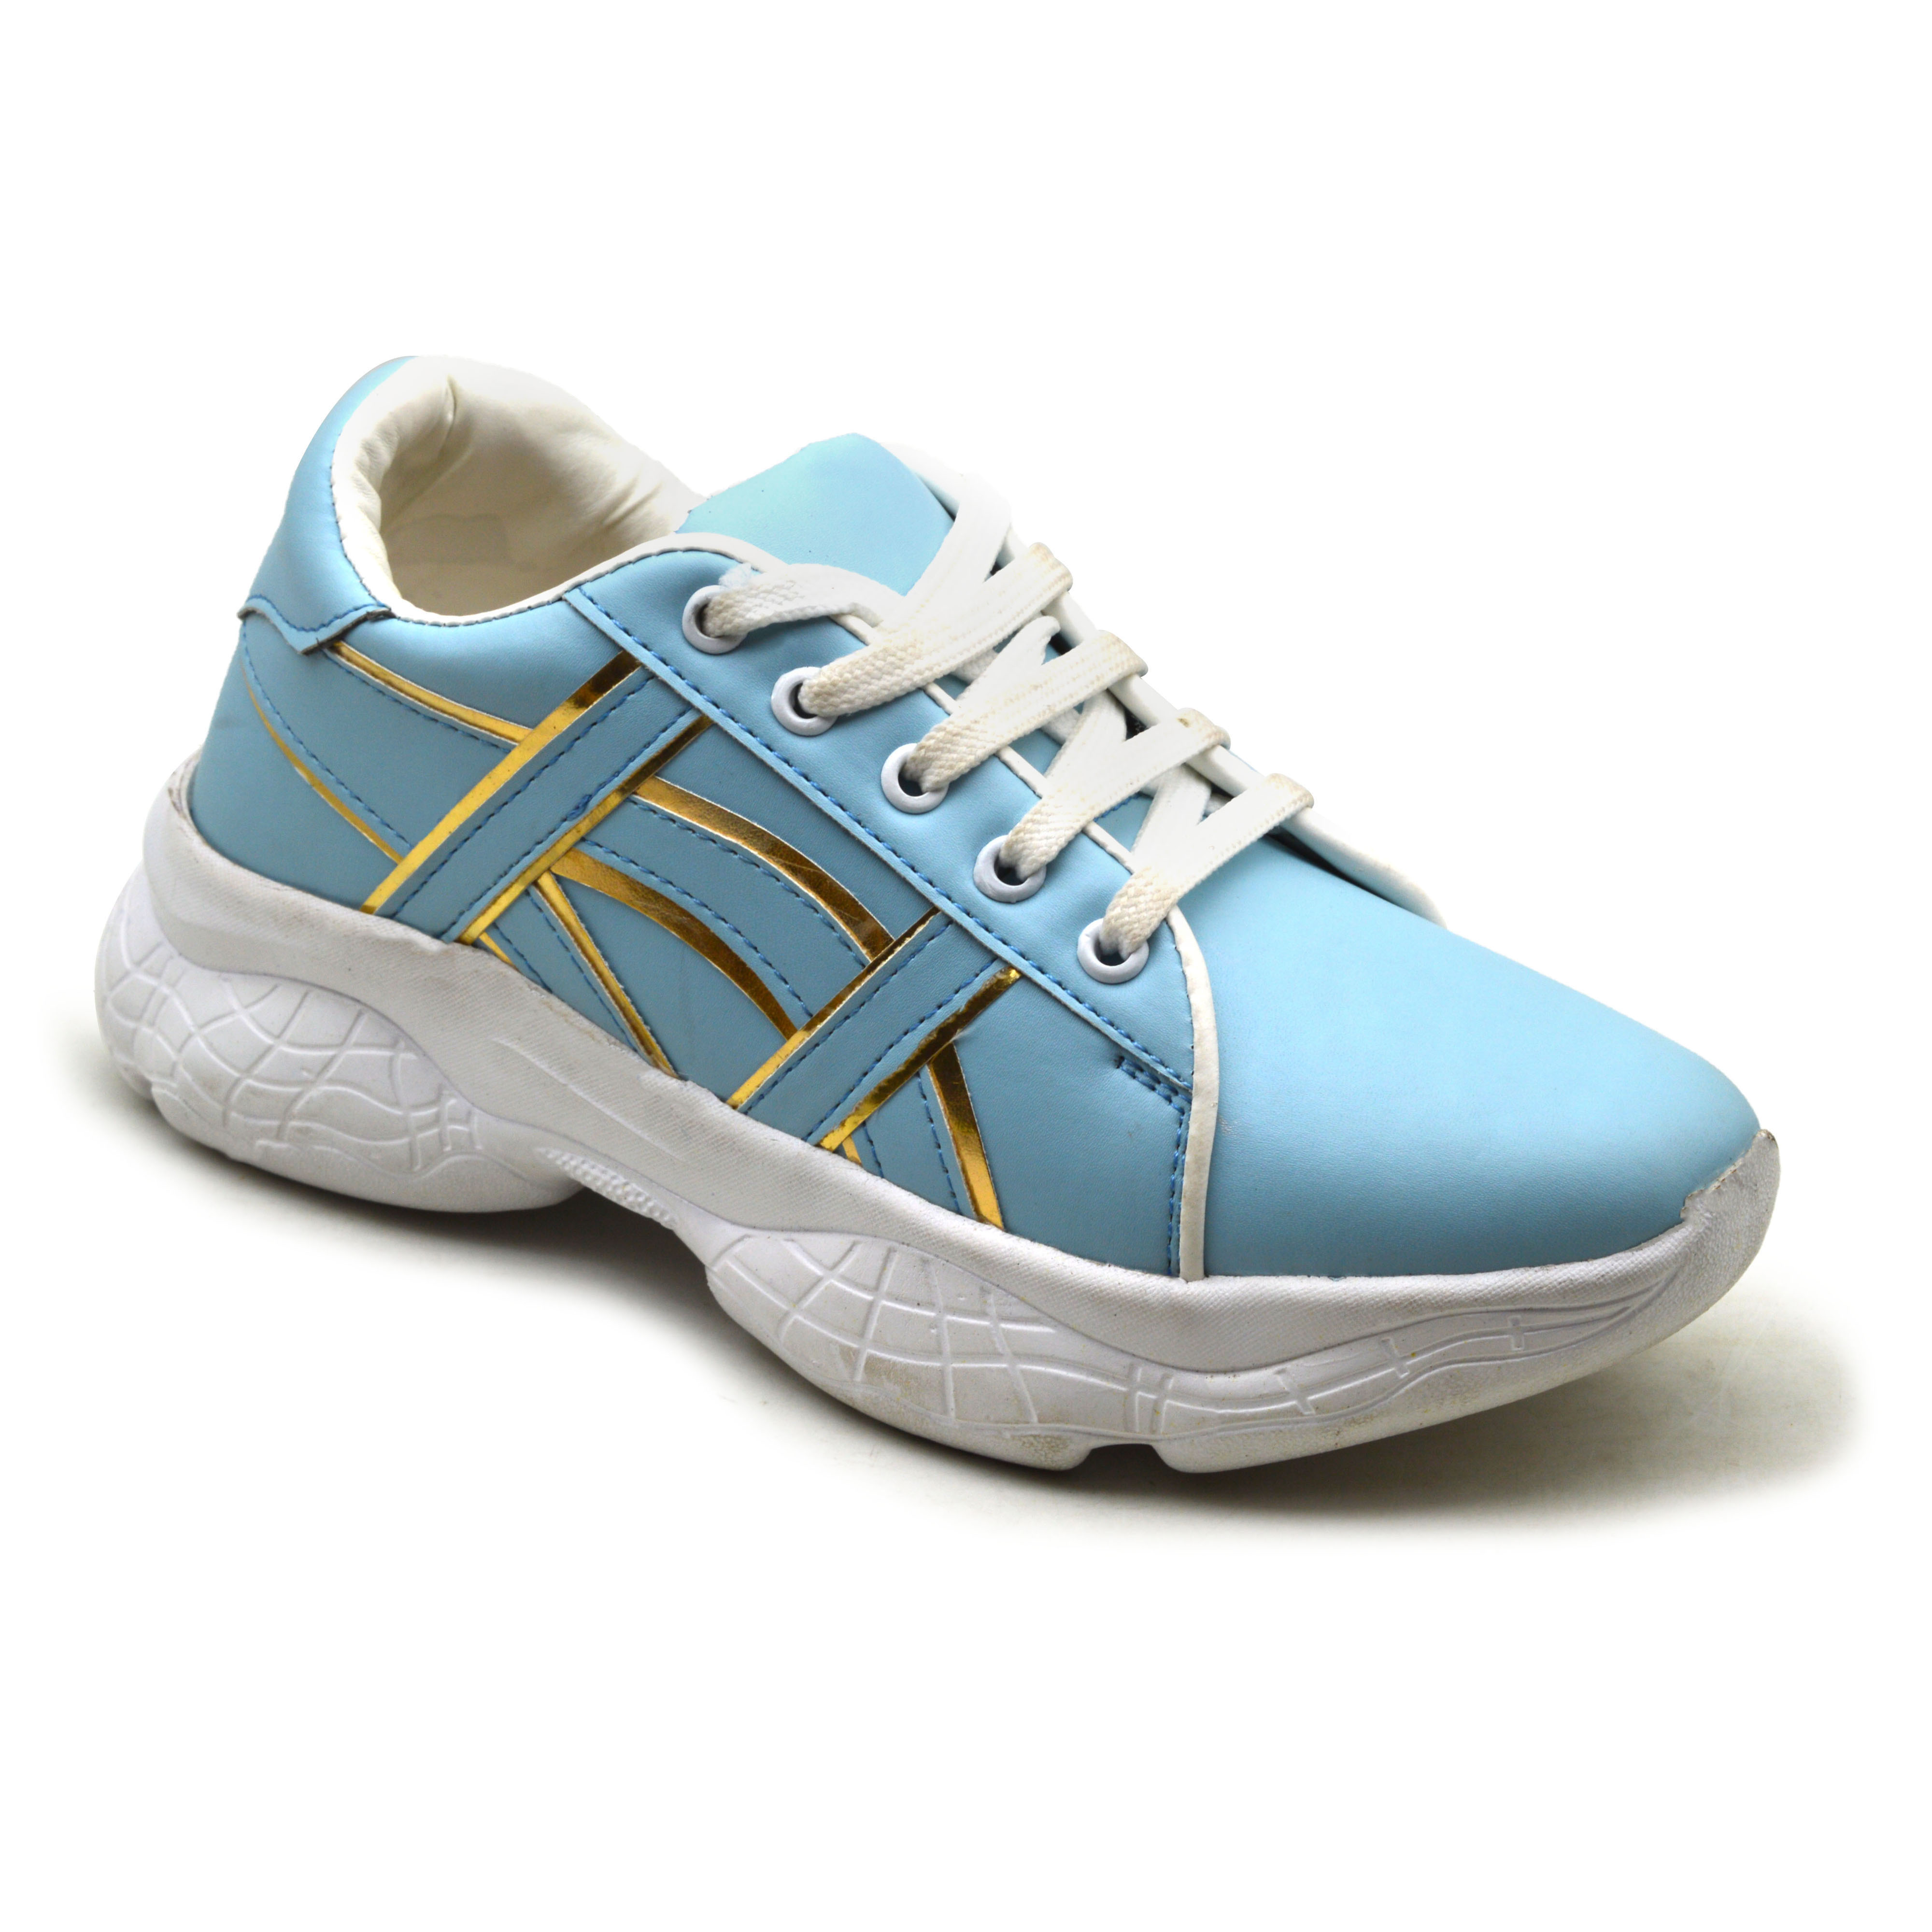 IMCOLUS439.739_SK RUNNING & COMFORTABLE GIRL'S SPORT SHOES IMCOLUS439.739_SK (SKY BLUE, 36TO41, PAIR'S)